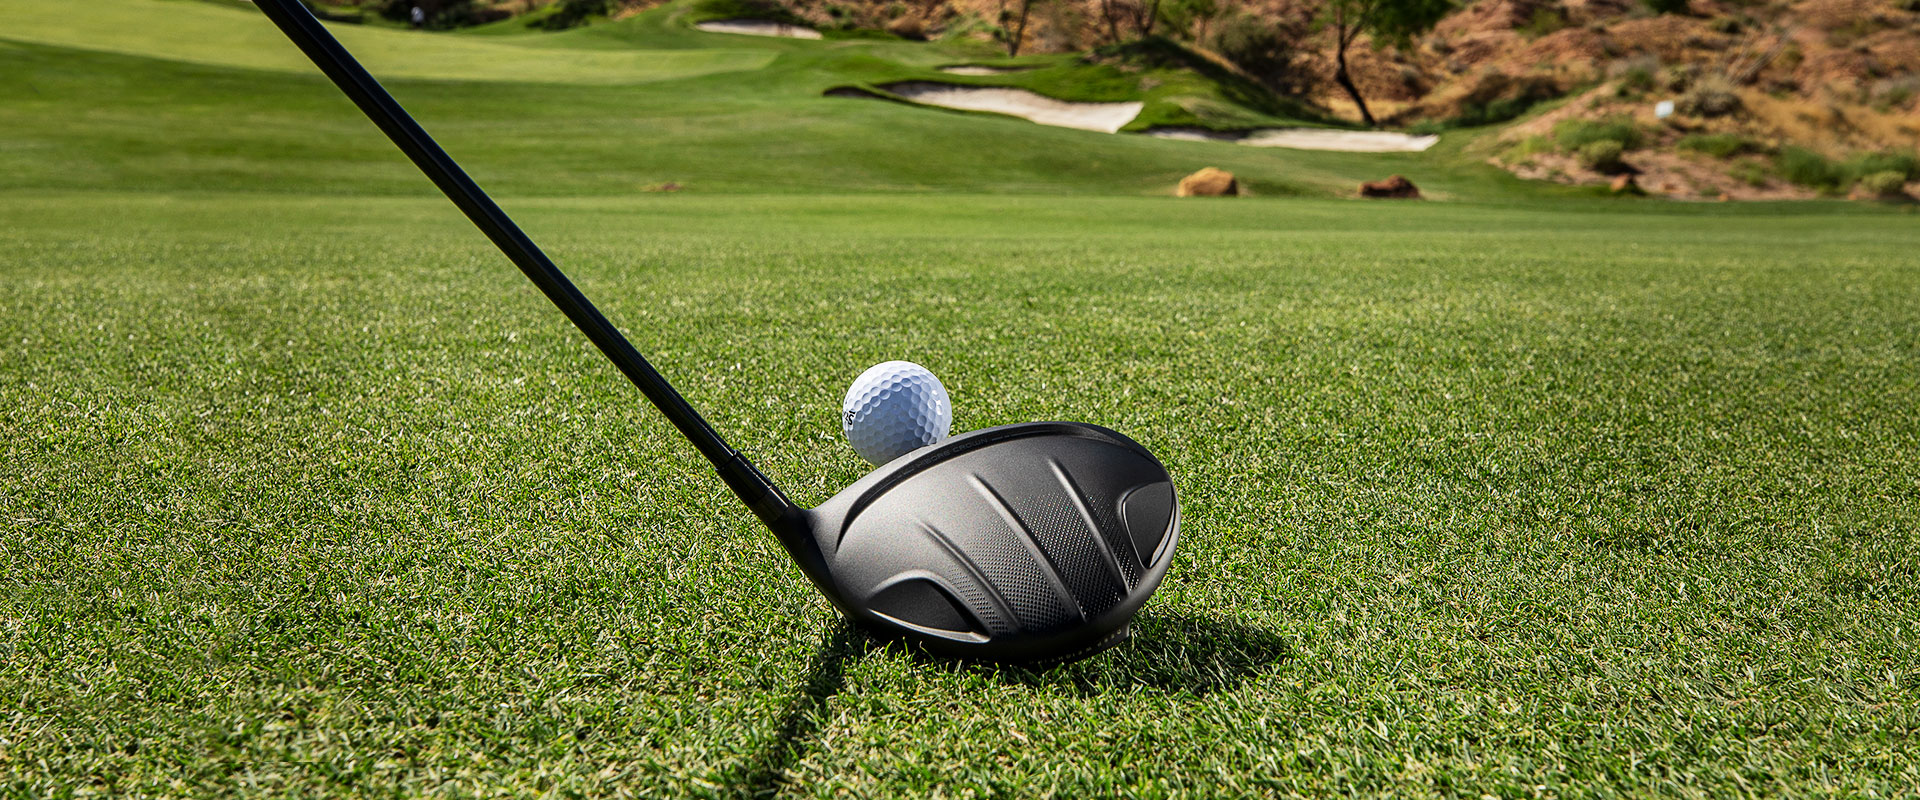 Cleveland Golf Launcher HB Turbo driver crown.